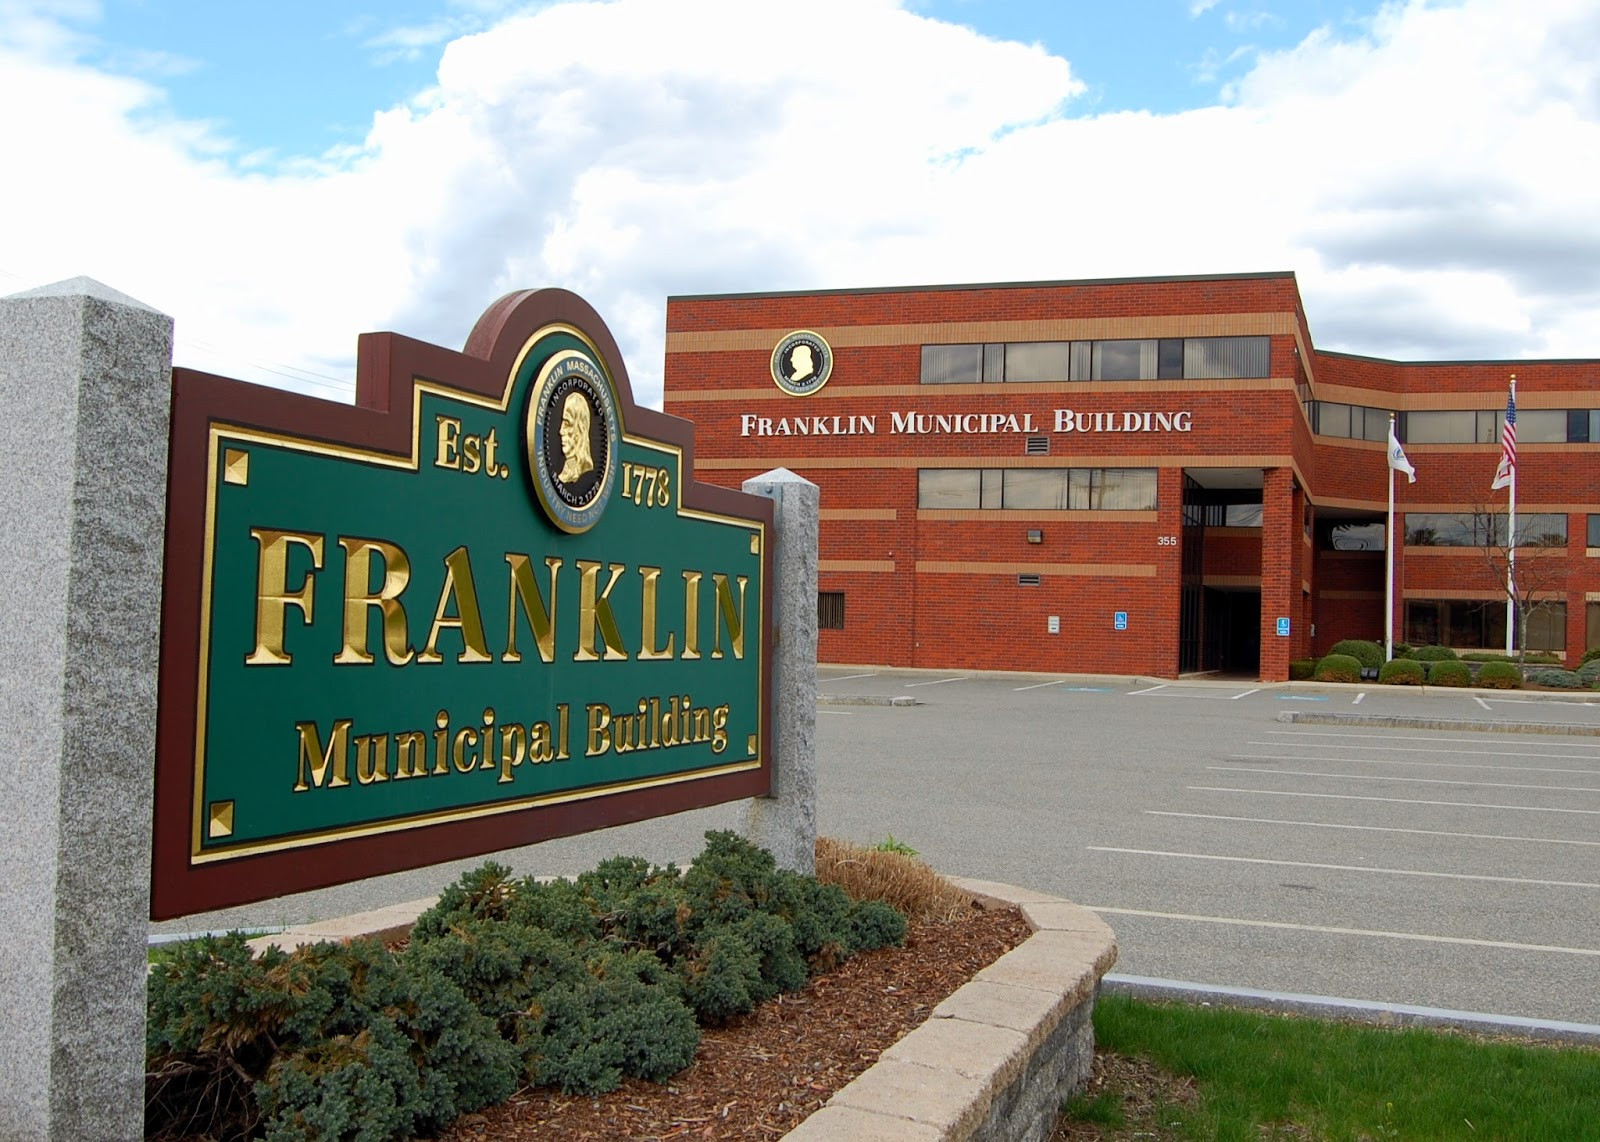 Franklin Municipal Building, location of the town offices and site of the Town Council meeting